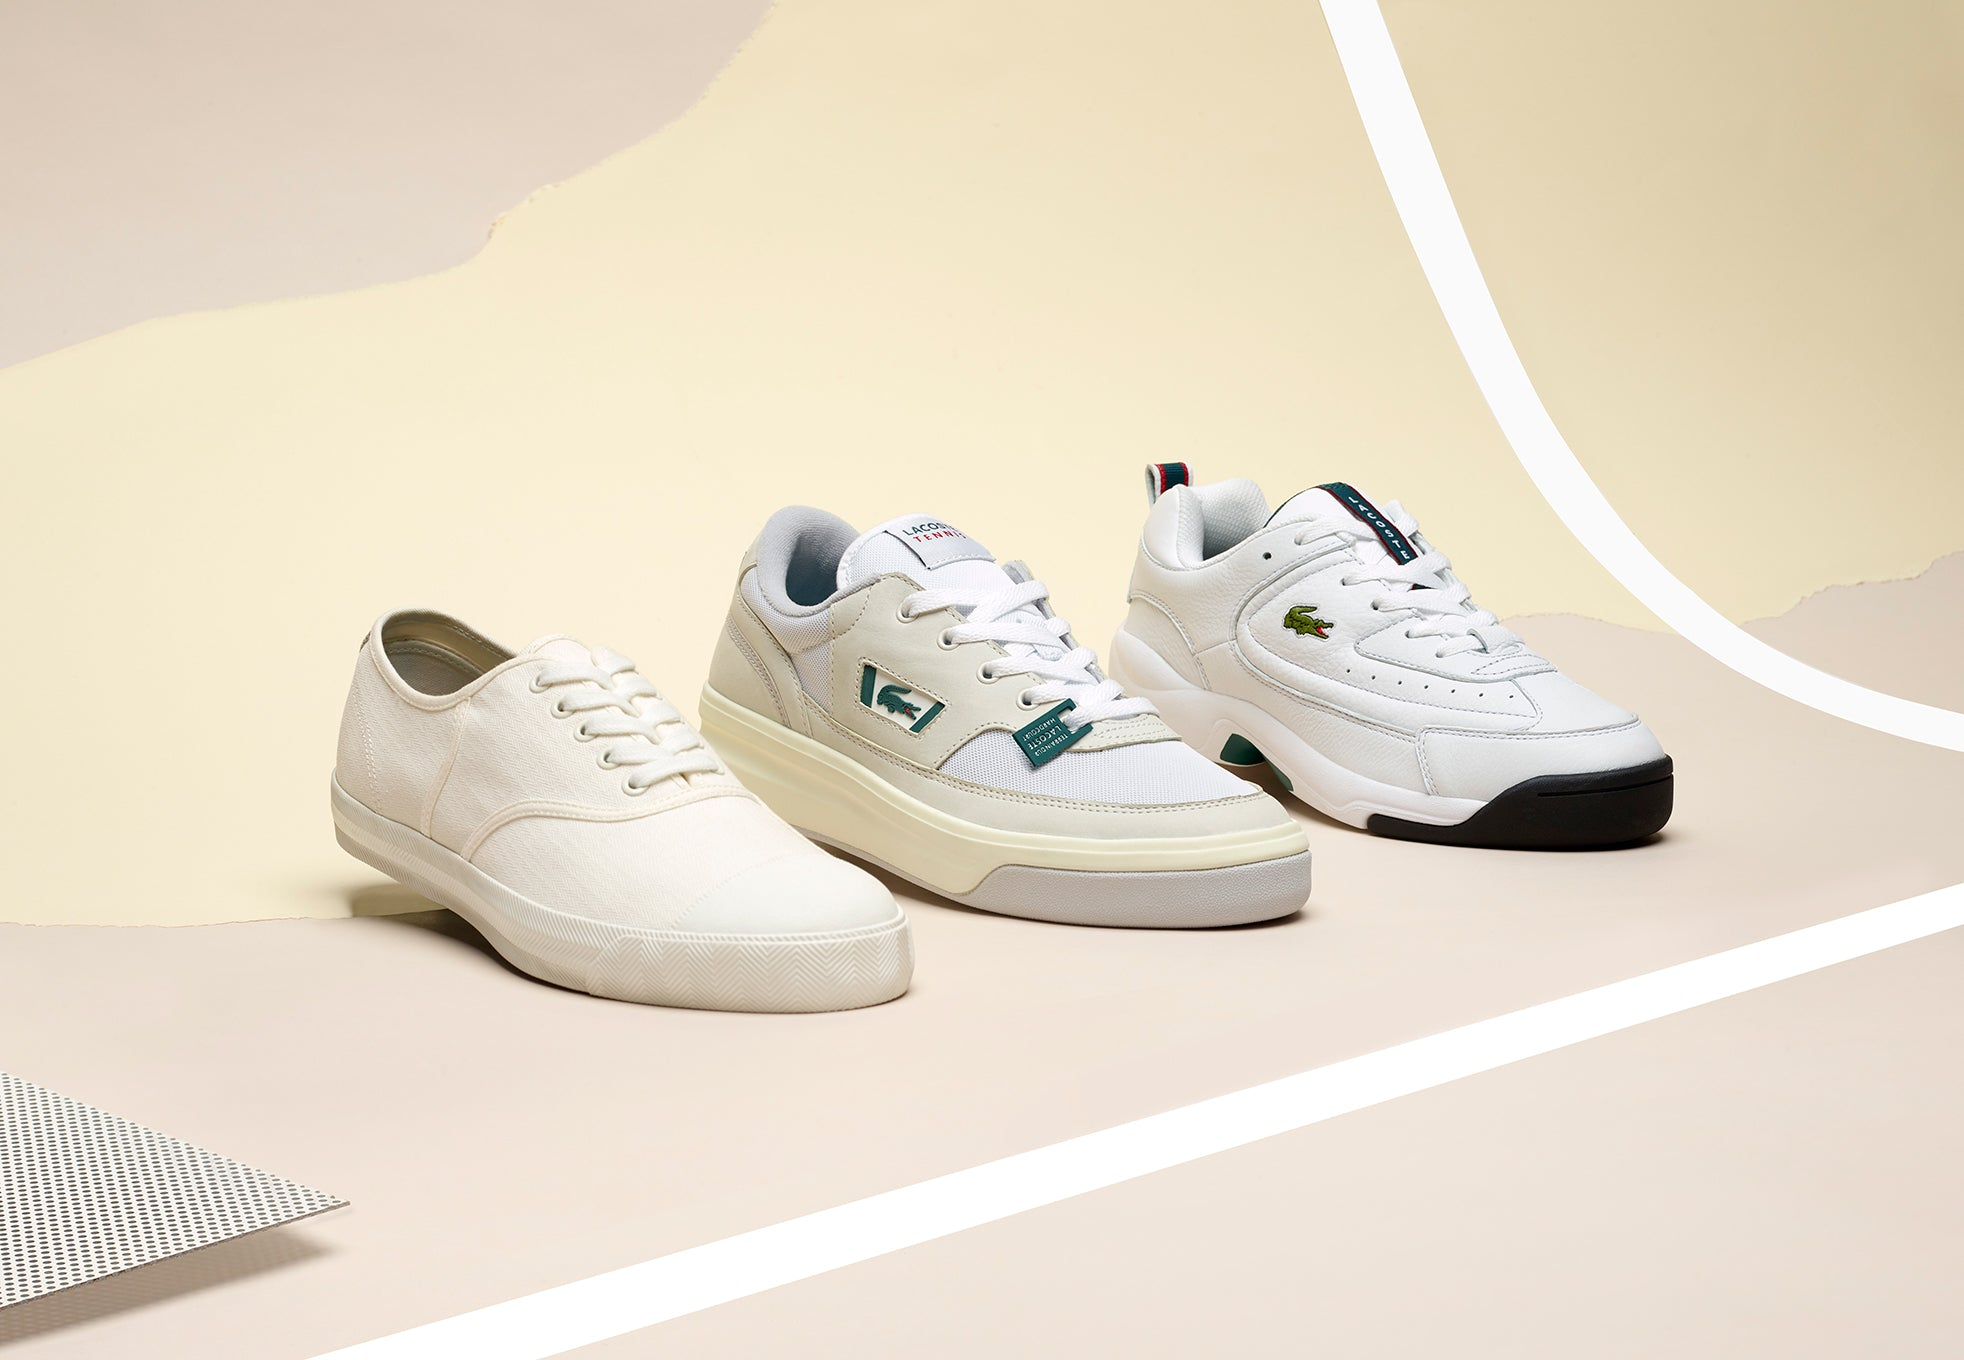 Shop New For The Season Styles | Sale: Ellesse, Reebok And